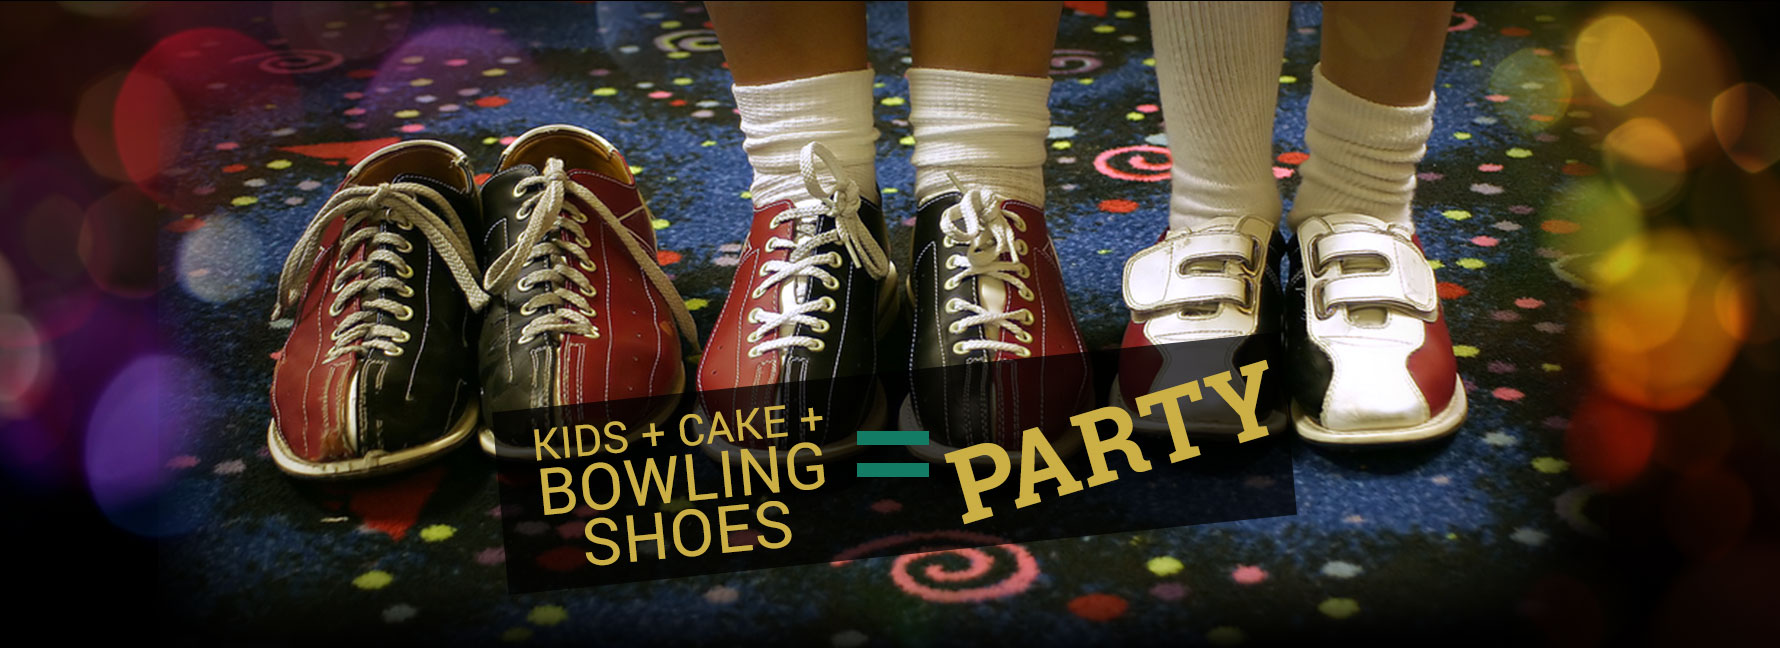 Kids, Cakes, and Bowling Shoes